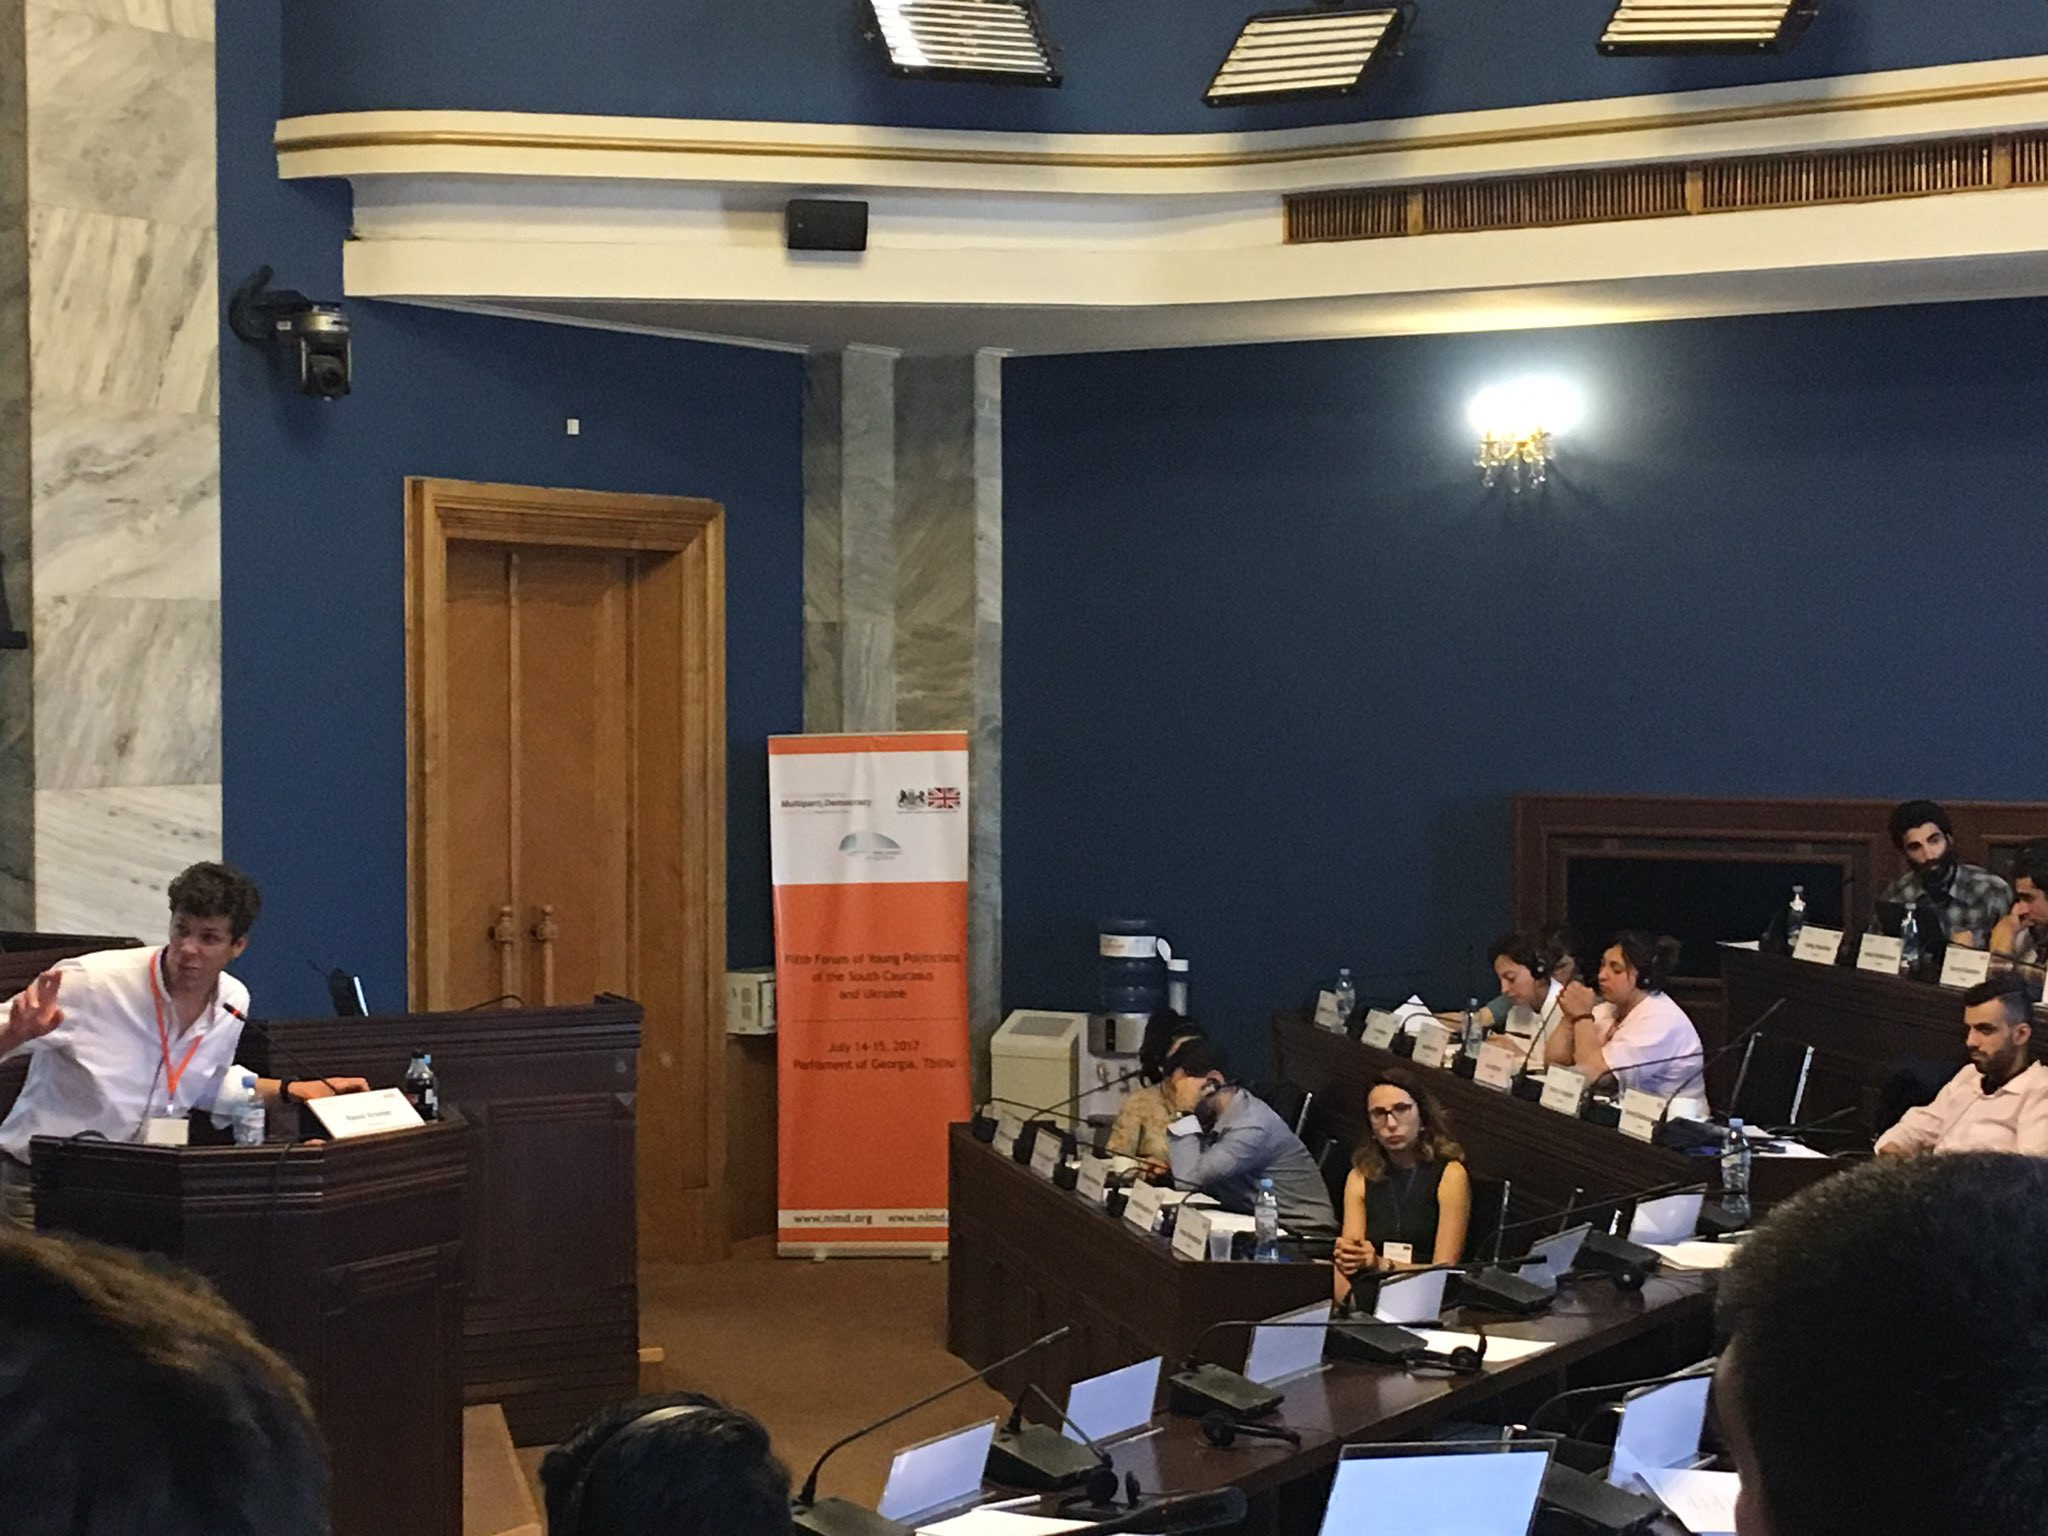 The #youngpoliticians split into groups to learn from software developers and international experts on digital tools. #DigitalDemocracyForum https://t.co/UOfs0EGwi8